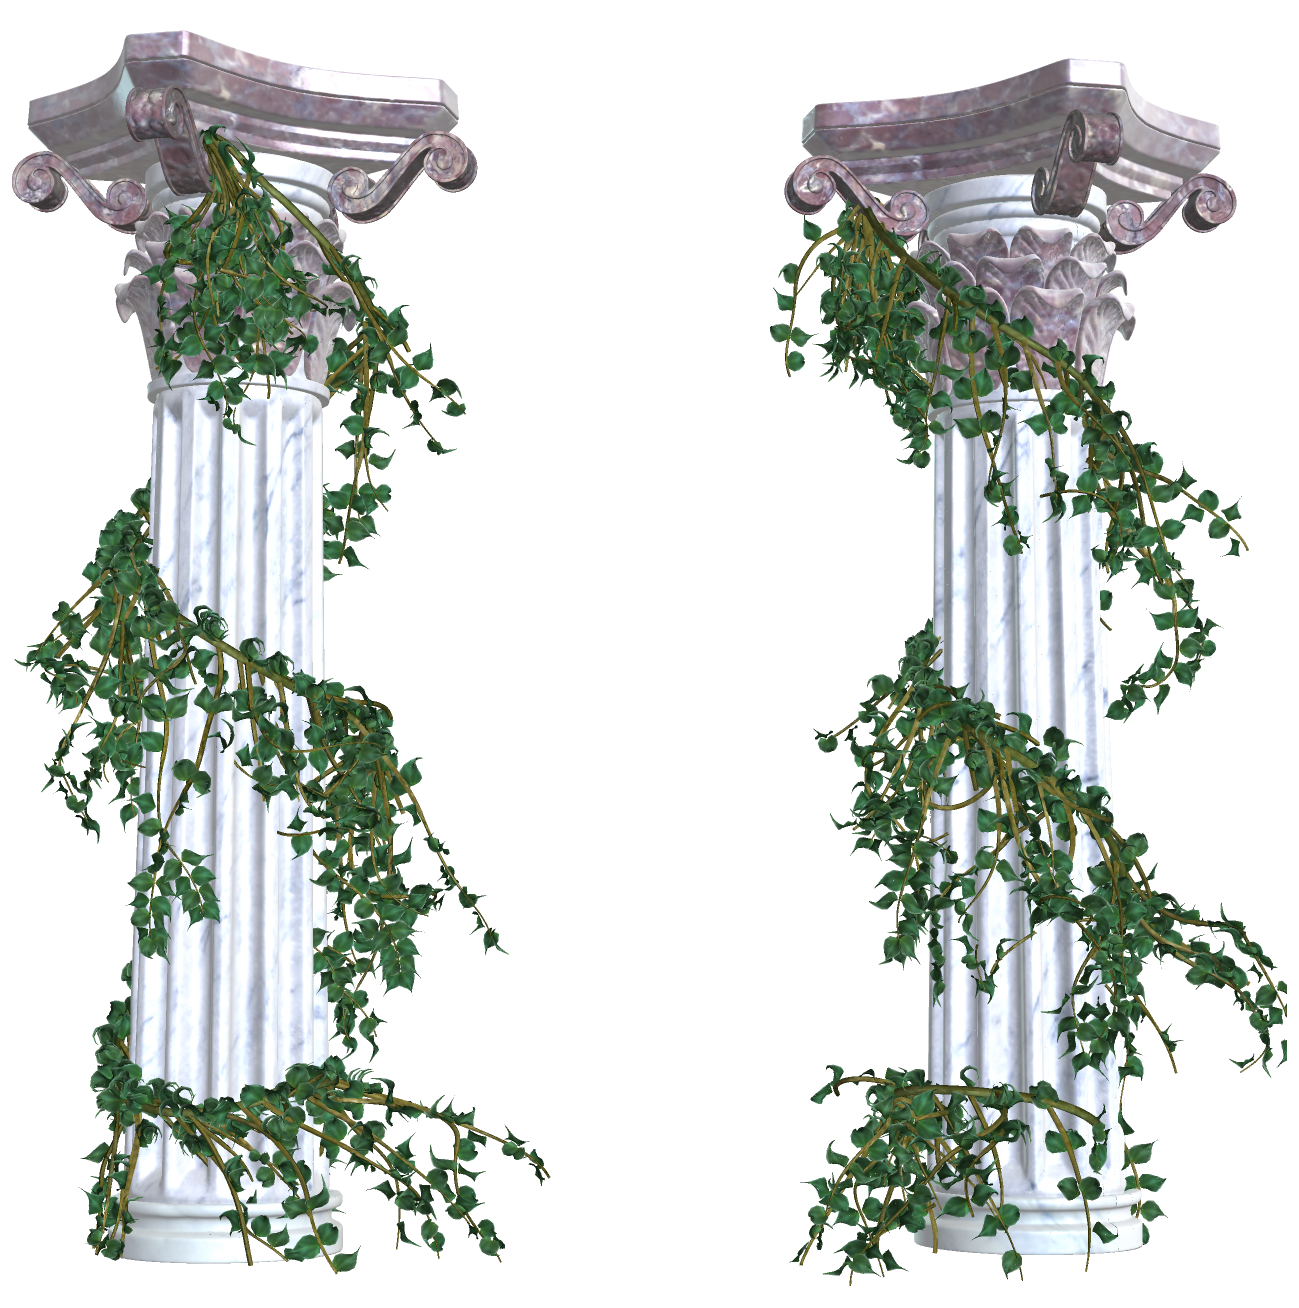 Beautiful Columns With Vines Png Decorative Elements Gallery Yopriceville High Quality Images And Transpa Watercolor Wallpaper Iphone Vines Lemon Painting